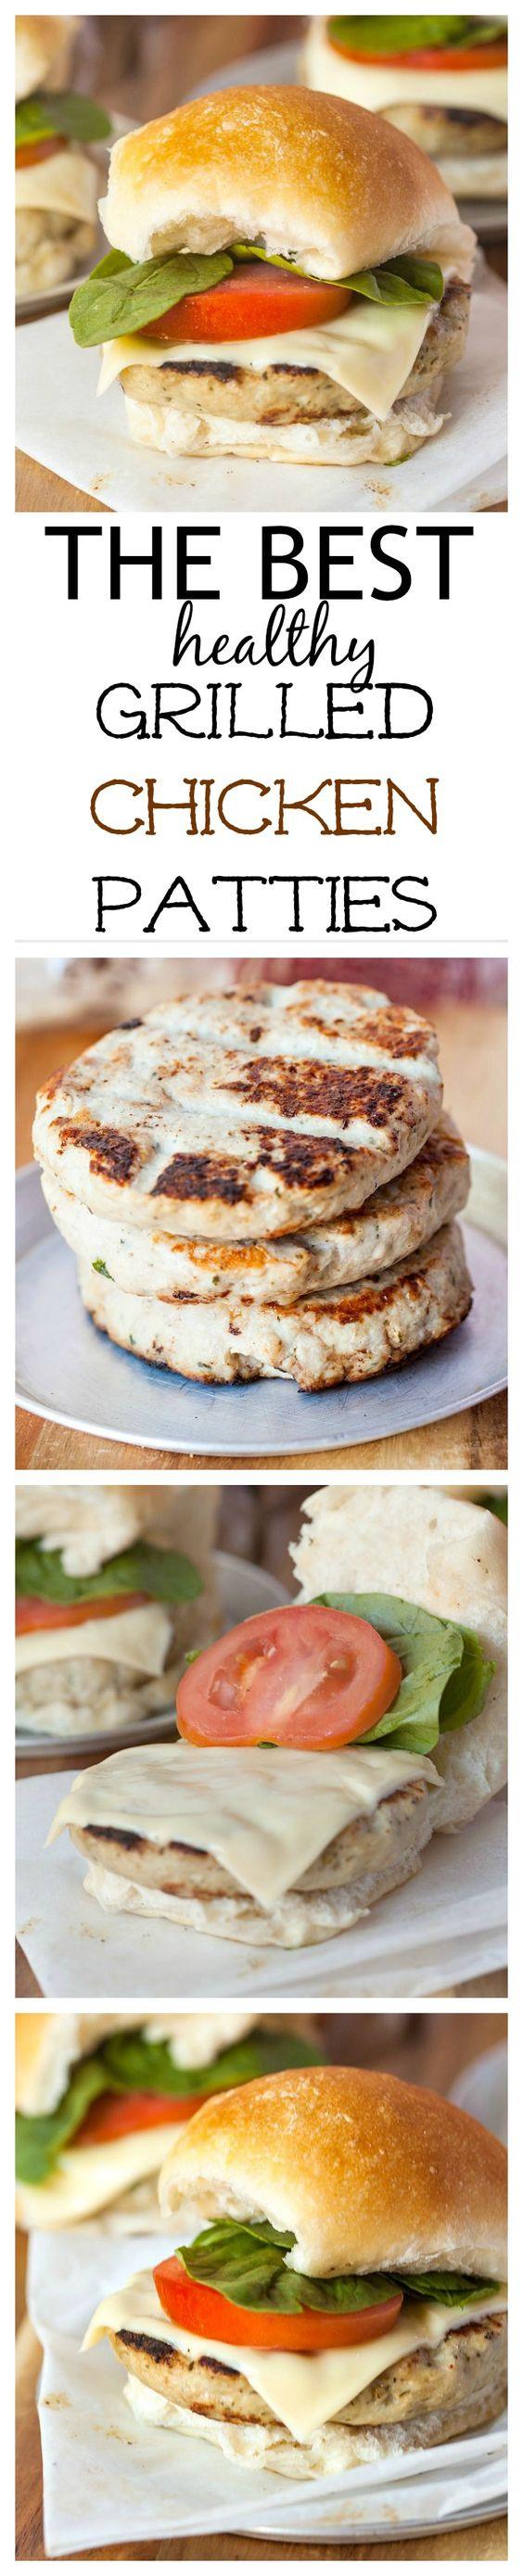 the BEST grilled chicken patties you'll ever eat- Moist, juicy and flavourful- A secret method is the reason for this!